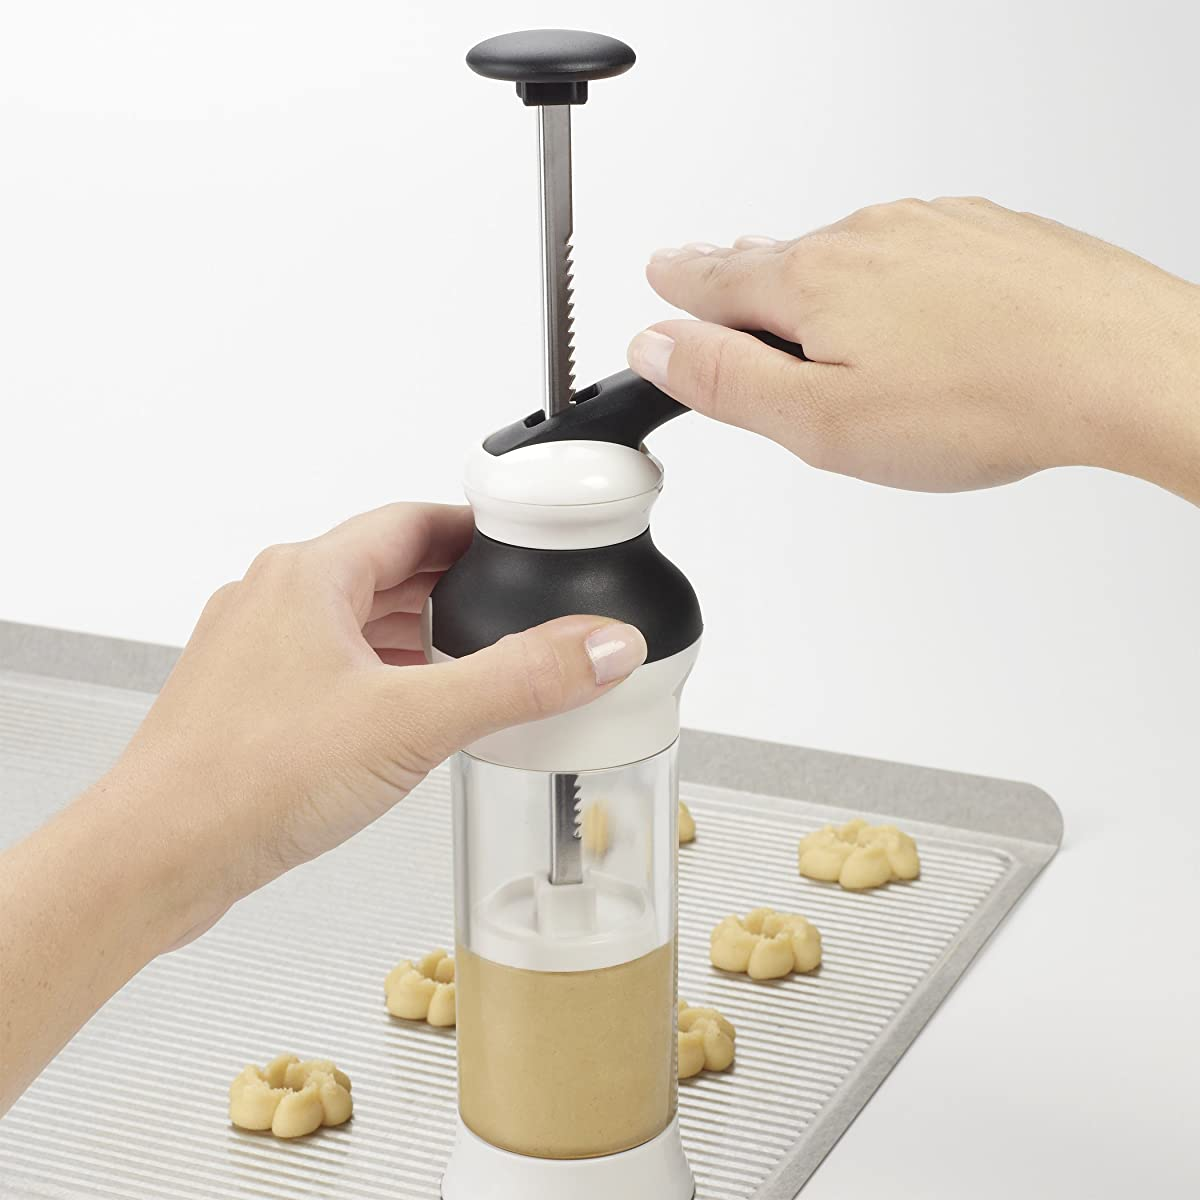 OXO Good Grips Cookie Press with Stainless Steel Disks and Storage Case